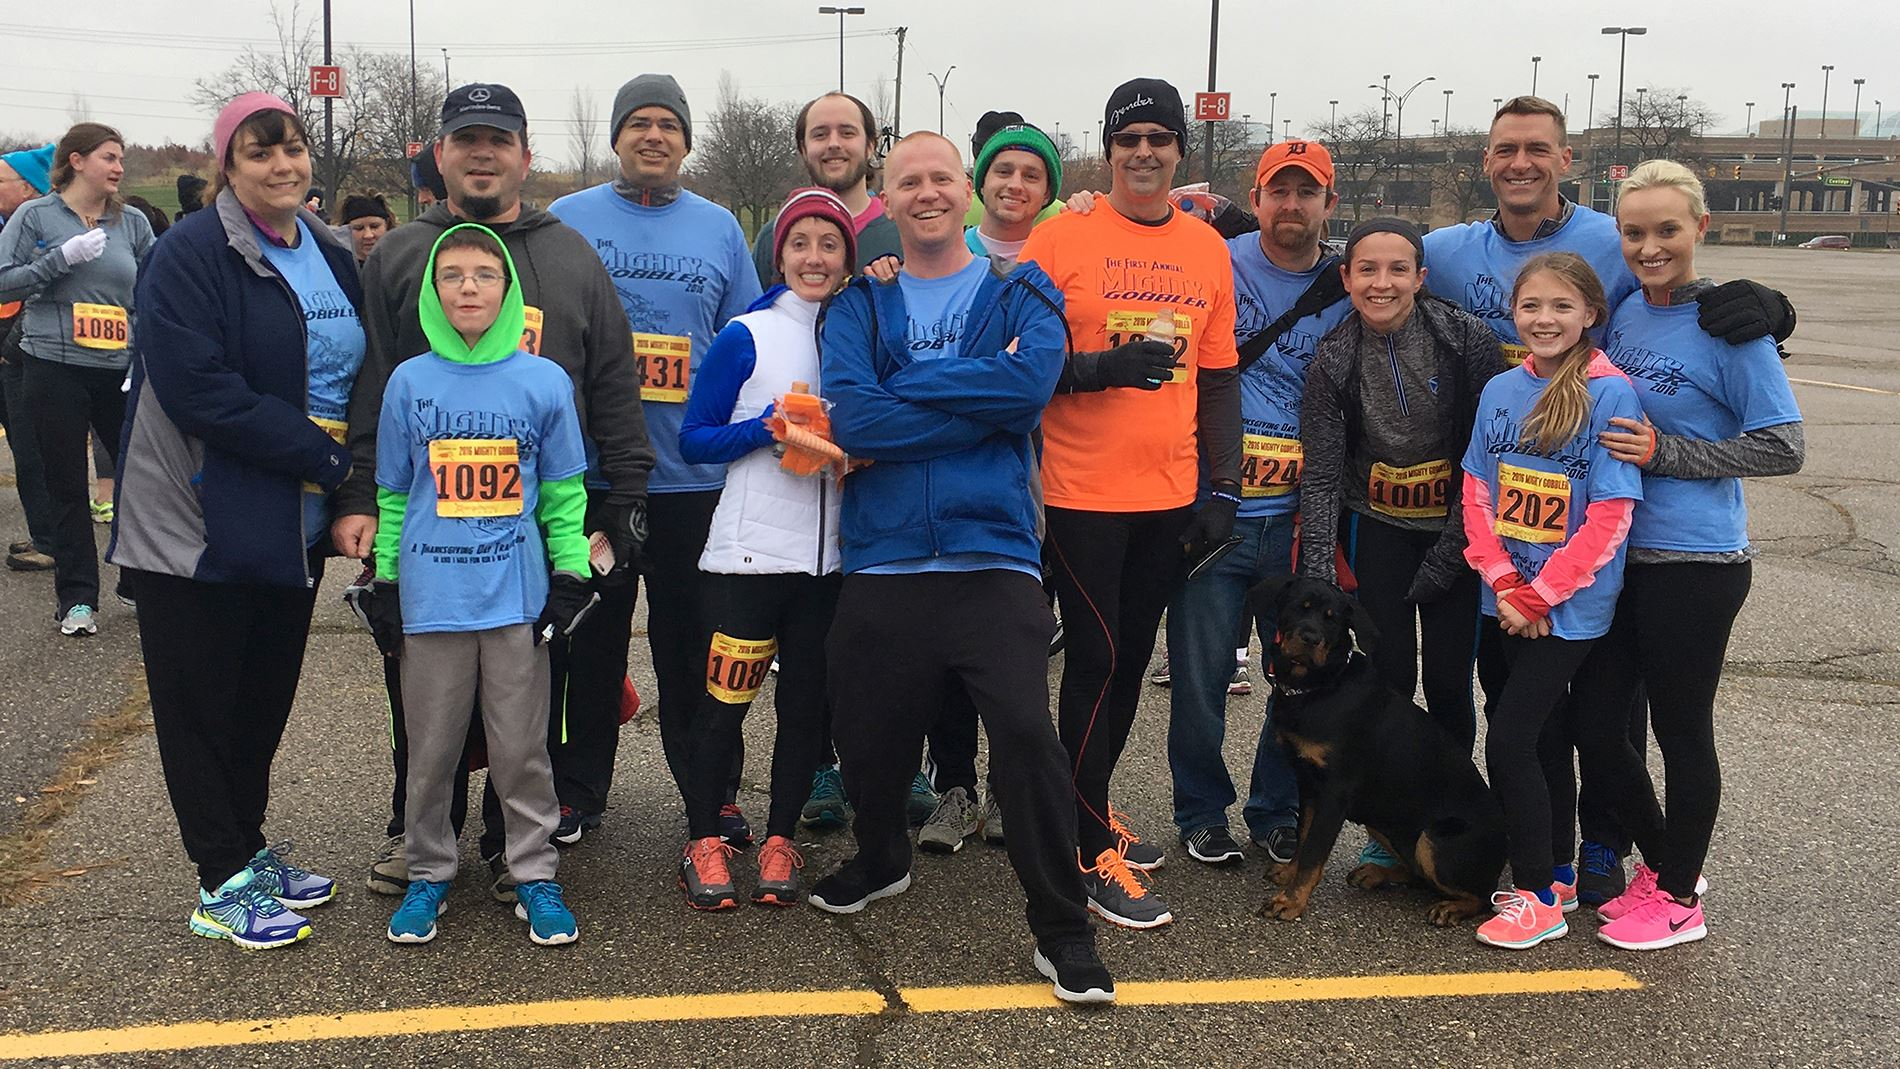 The Mighty Gobbler - A run hosted by the Lutheran Church of the Master as a gift to the community. A portion of the proceeds benefit SAY Detroit, a Mitch Albom charity, and Interfaith Volunteer Caregivers.